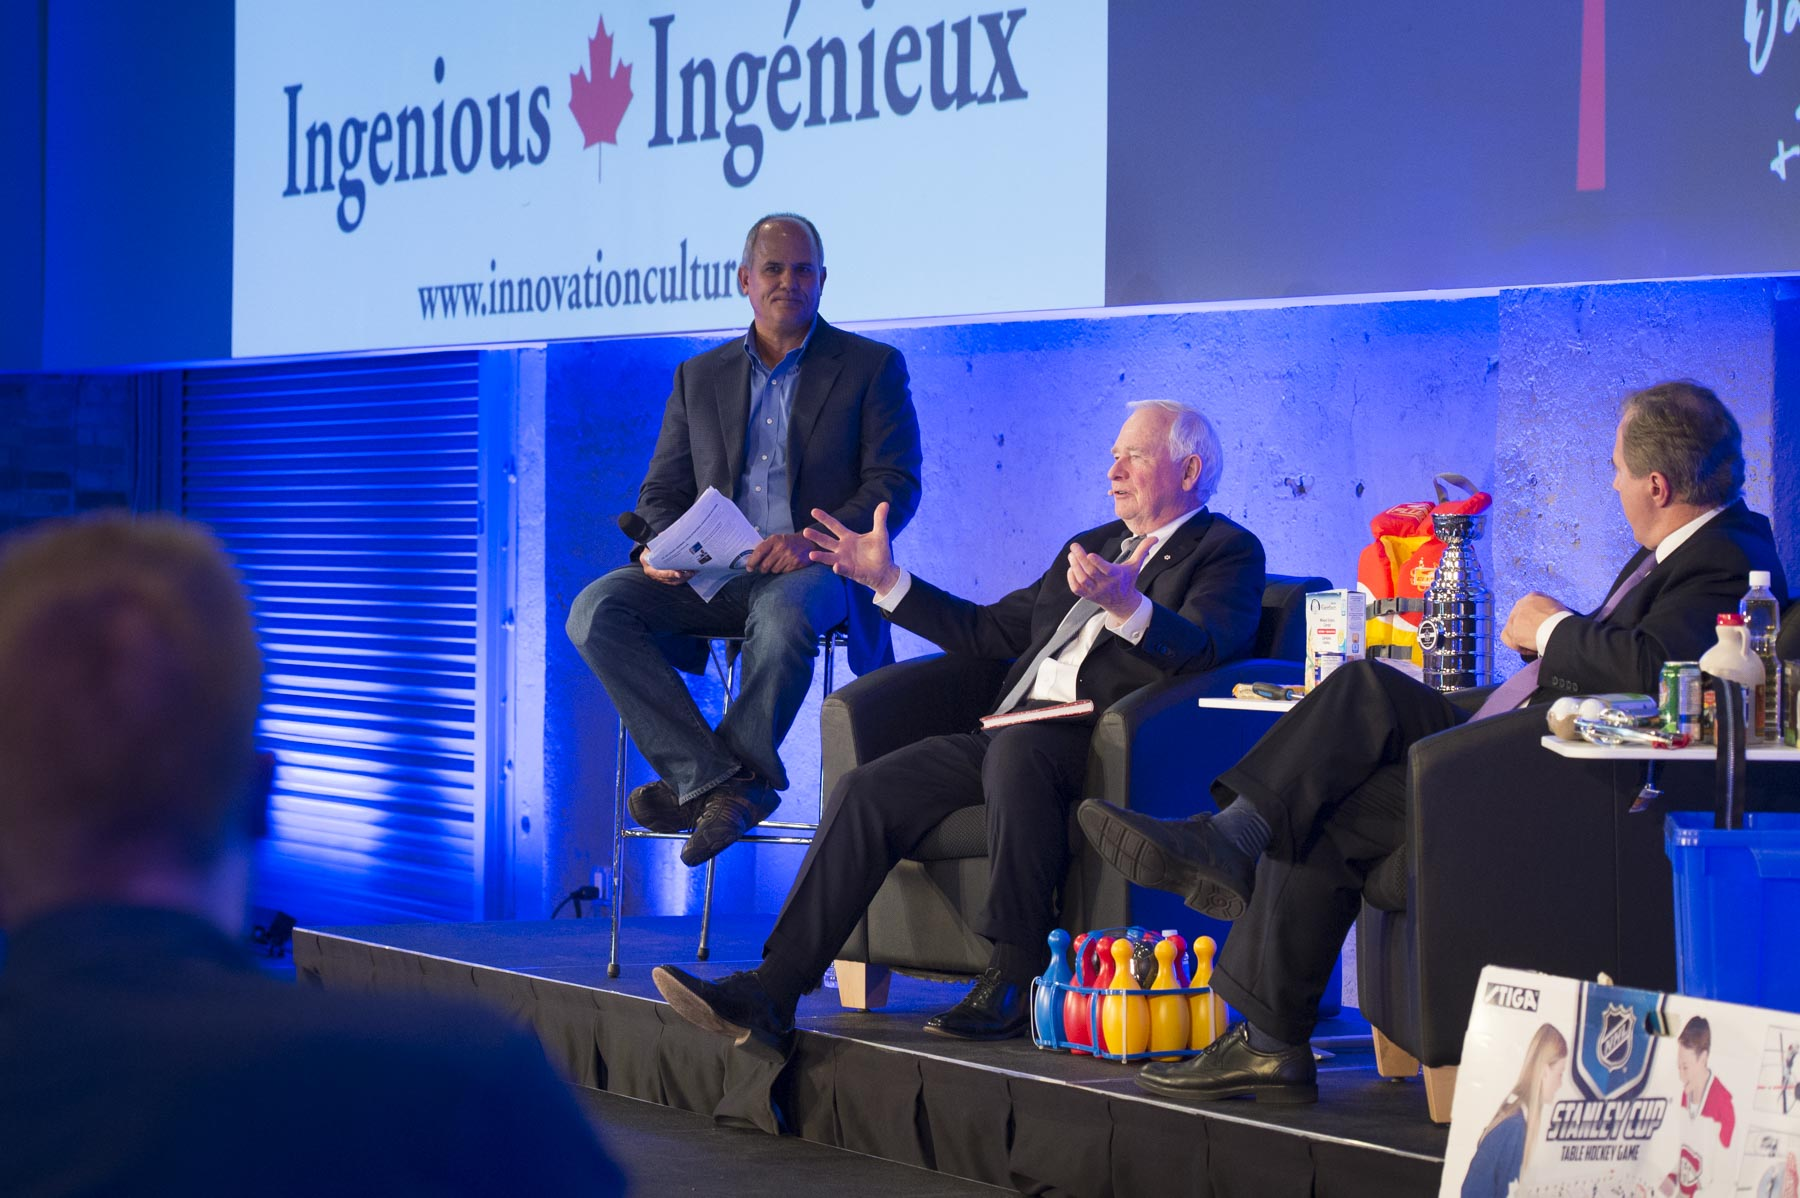 Later that day, the Governor General and Mr. Jenkins visited Communitech to discuss their new book Ingenious during an on-stage conversation hosted by Iain Klugman, President and CEO of Communitech.